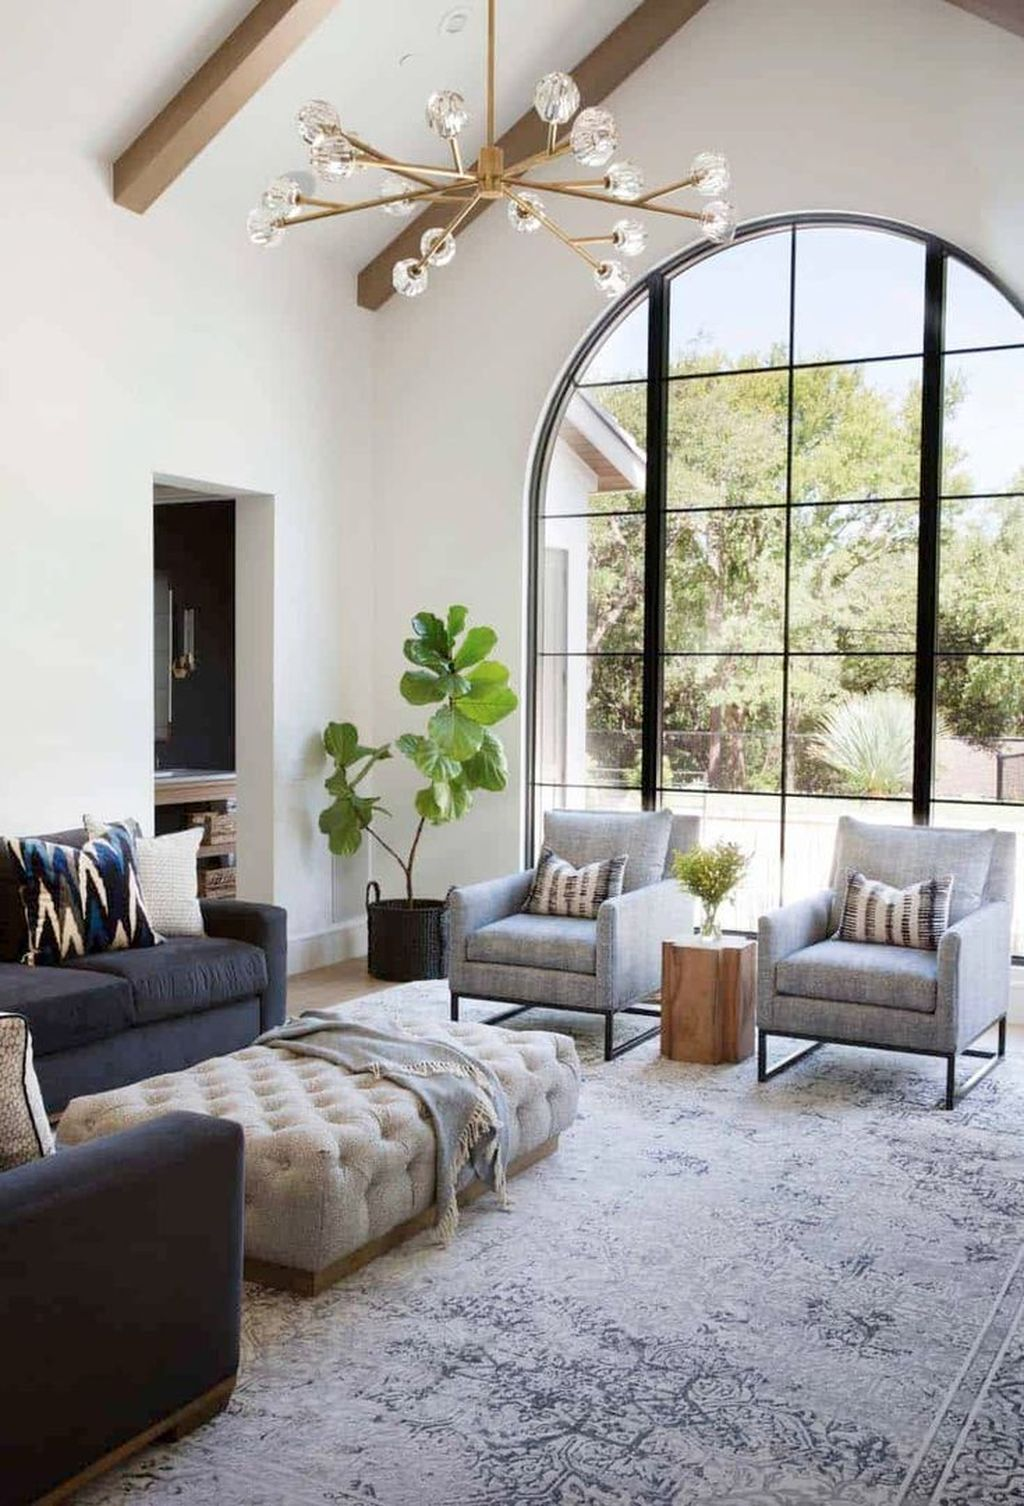 40 Lovely Living Room Decoration Ideas With Brilliant Lighting To Try Mediterranean Style Home Mediterranean Home Mediterranean Living Rooms Lovely living room decor